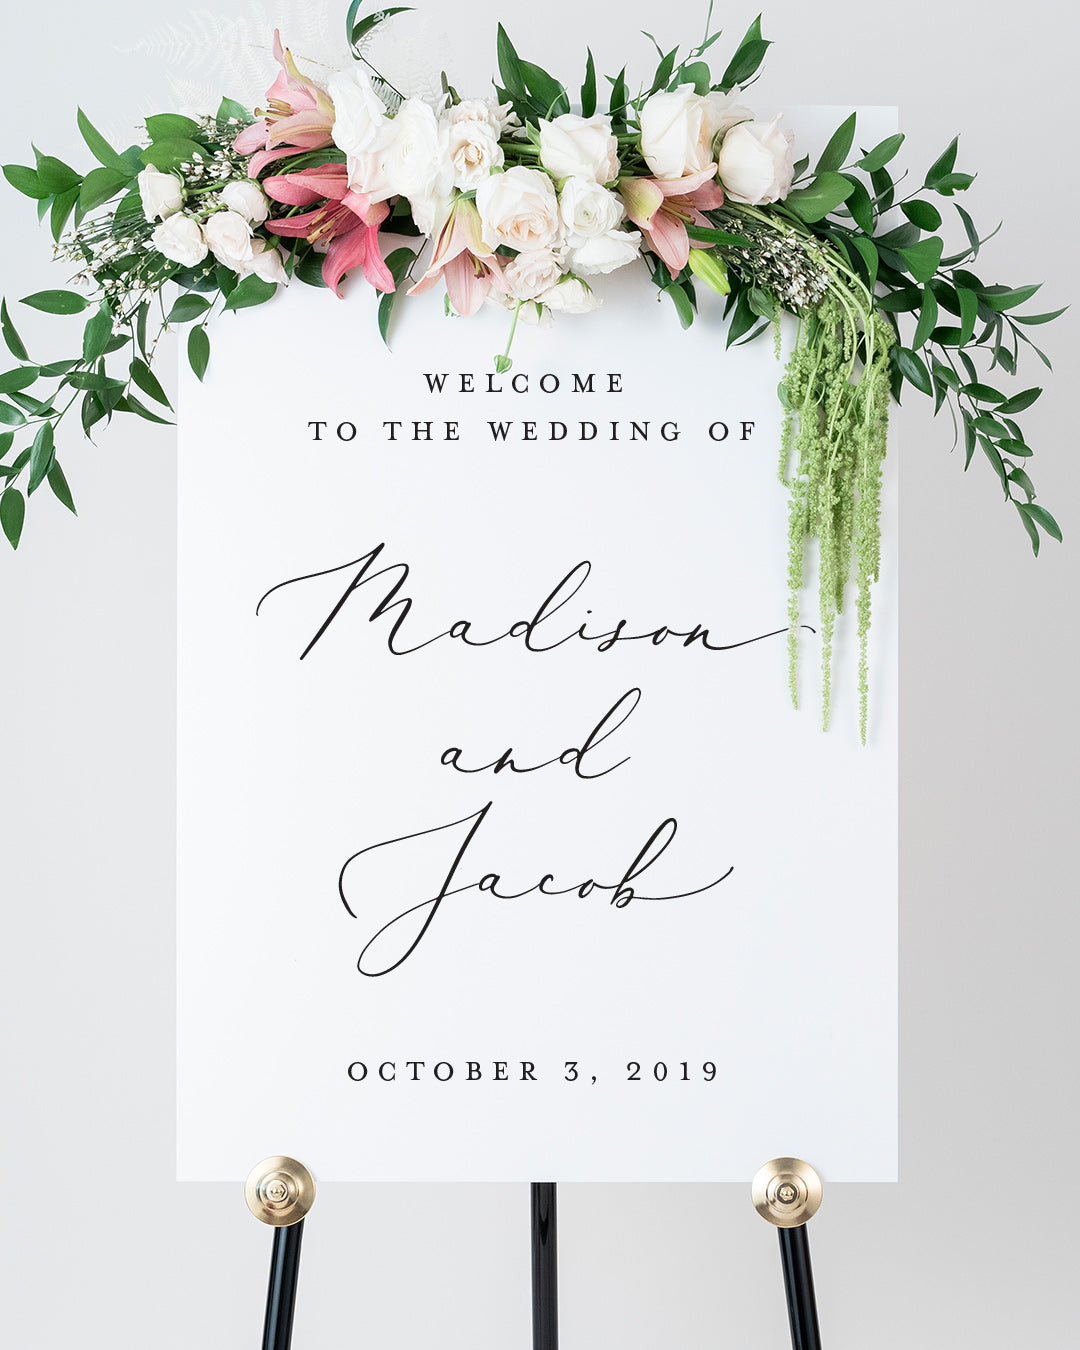 Welcome to our wedding sign welcome to wedding sign wedding easel gold welcome to our wedding sign welcome to our wedding signs welcome to